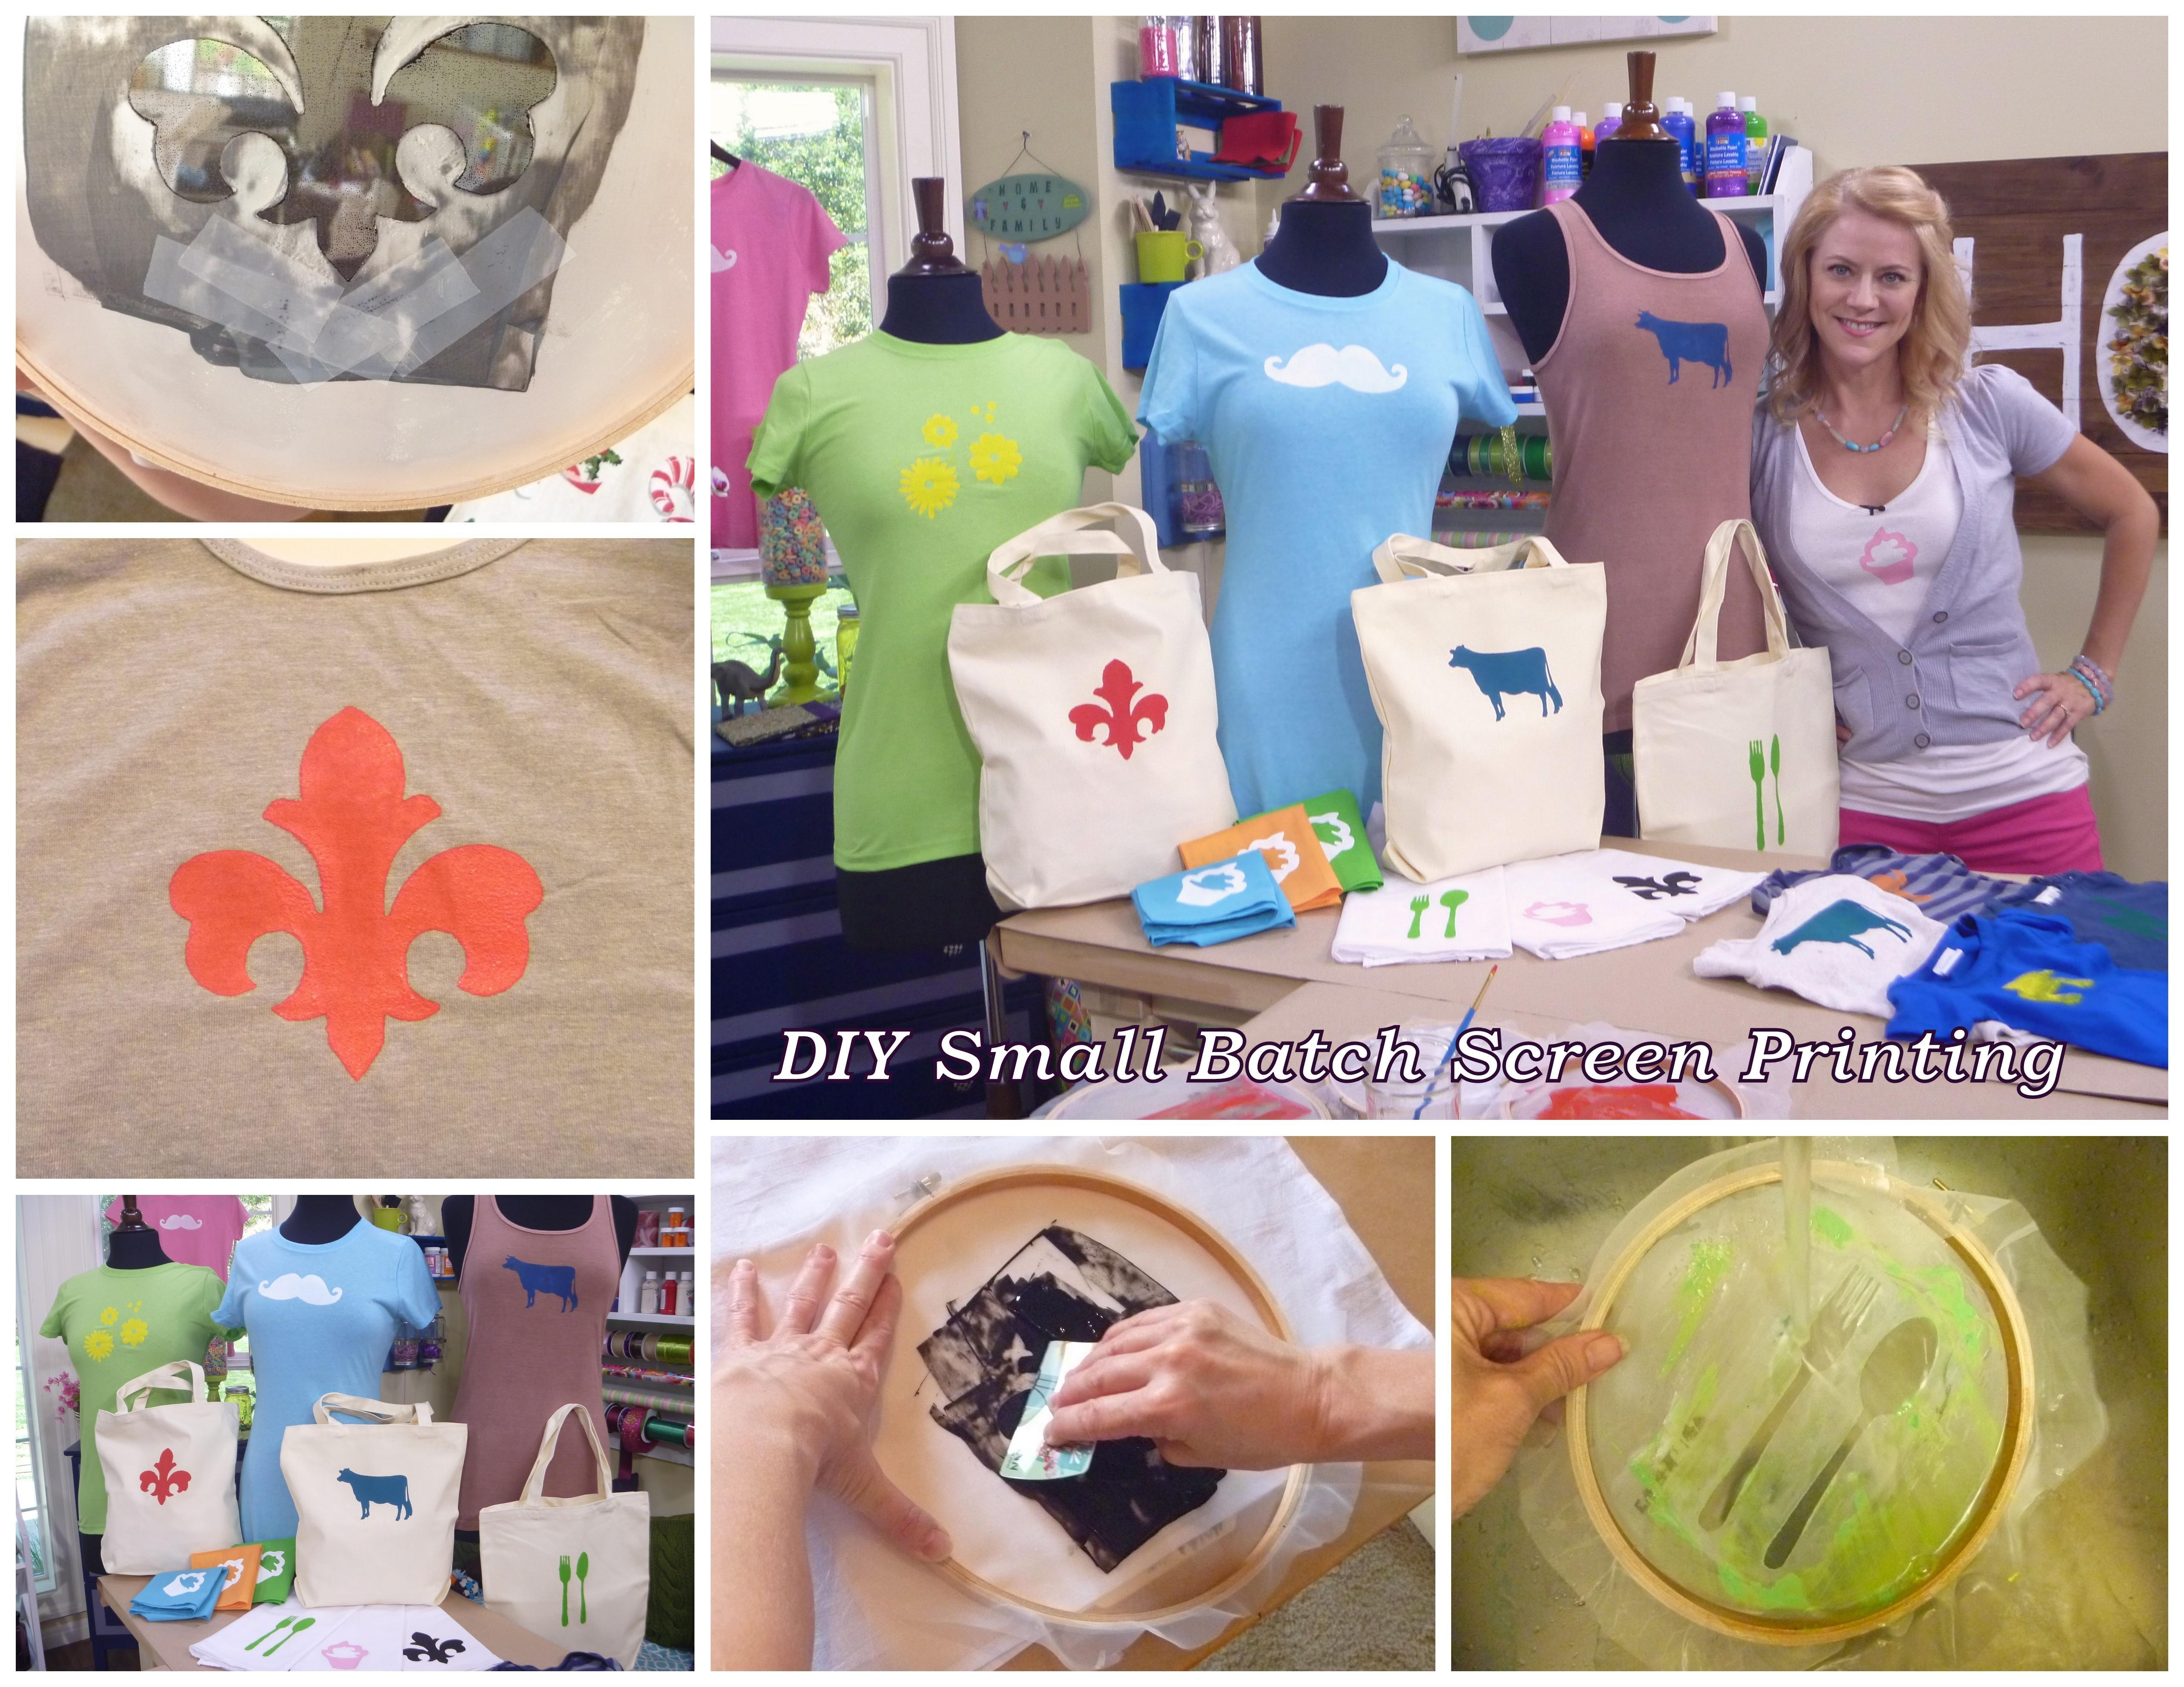 Diy Small Batch Screen Printing Tutorial Using